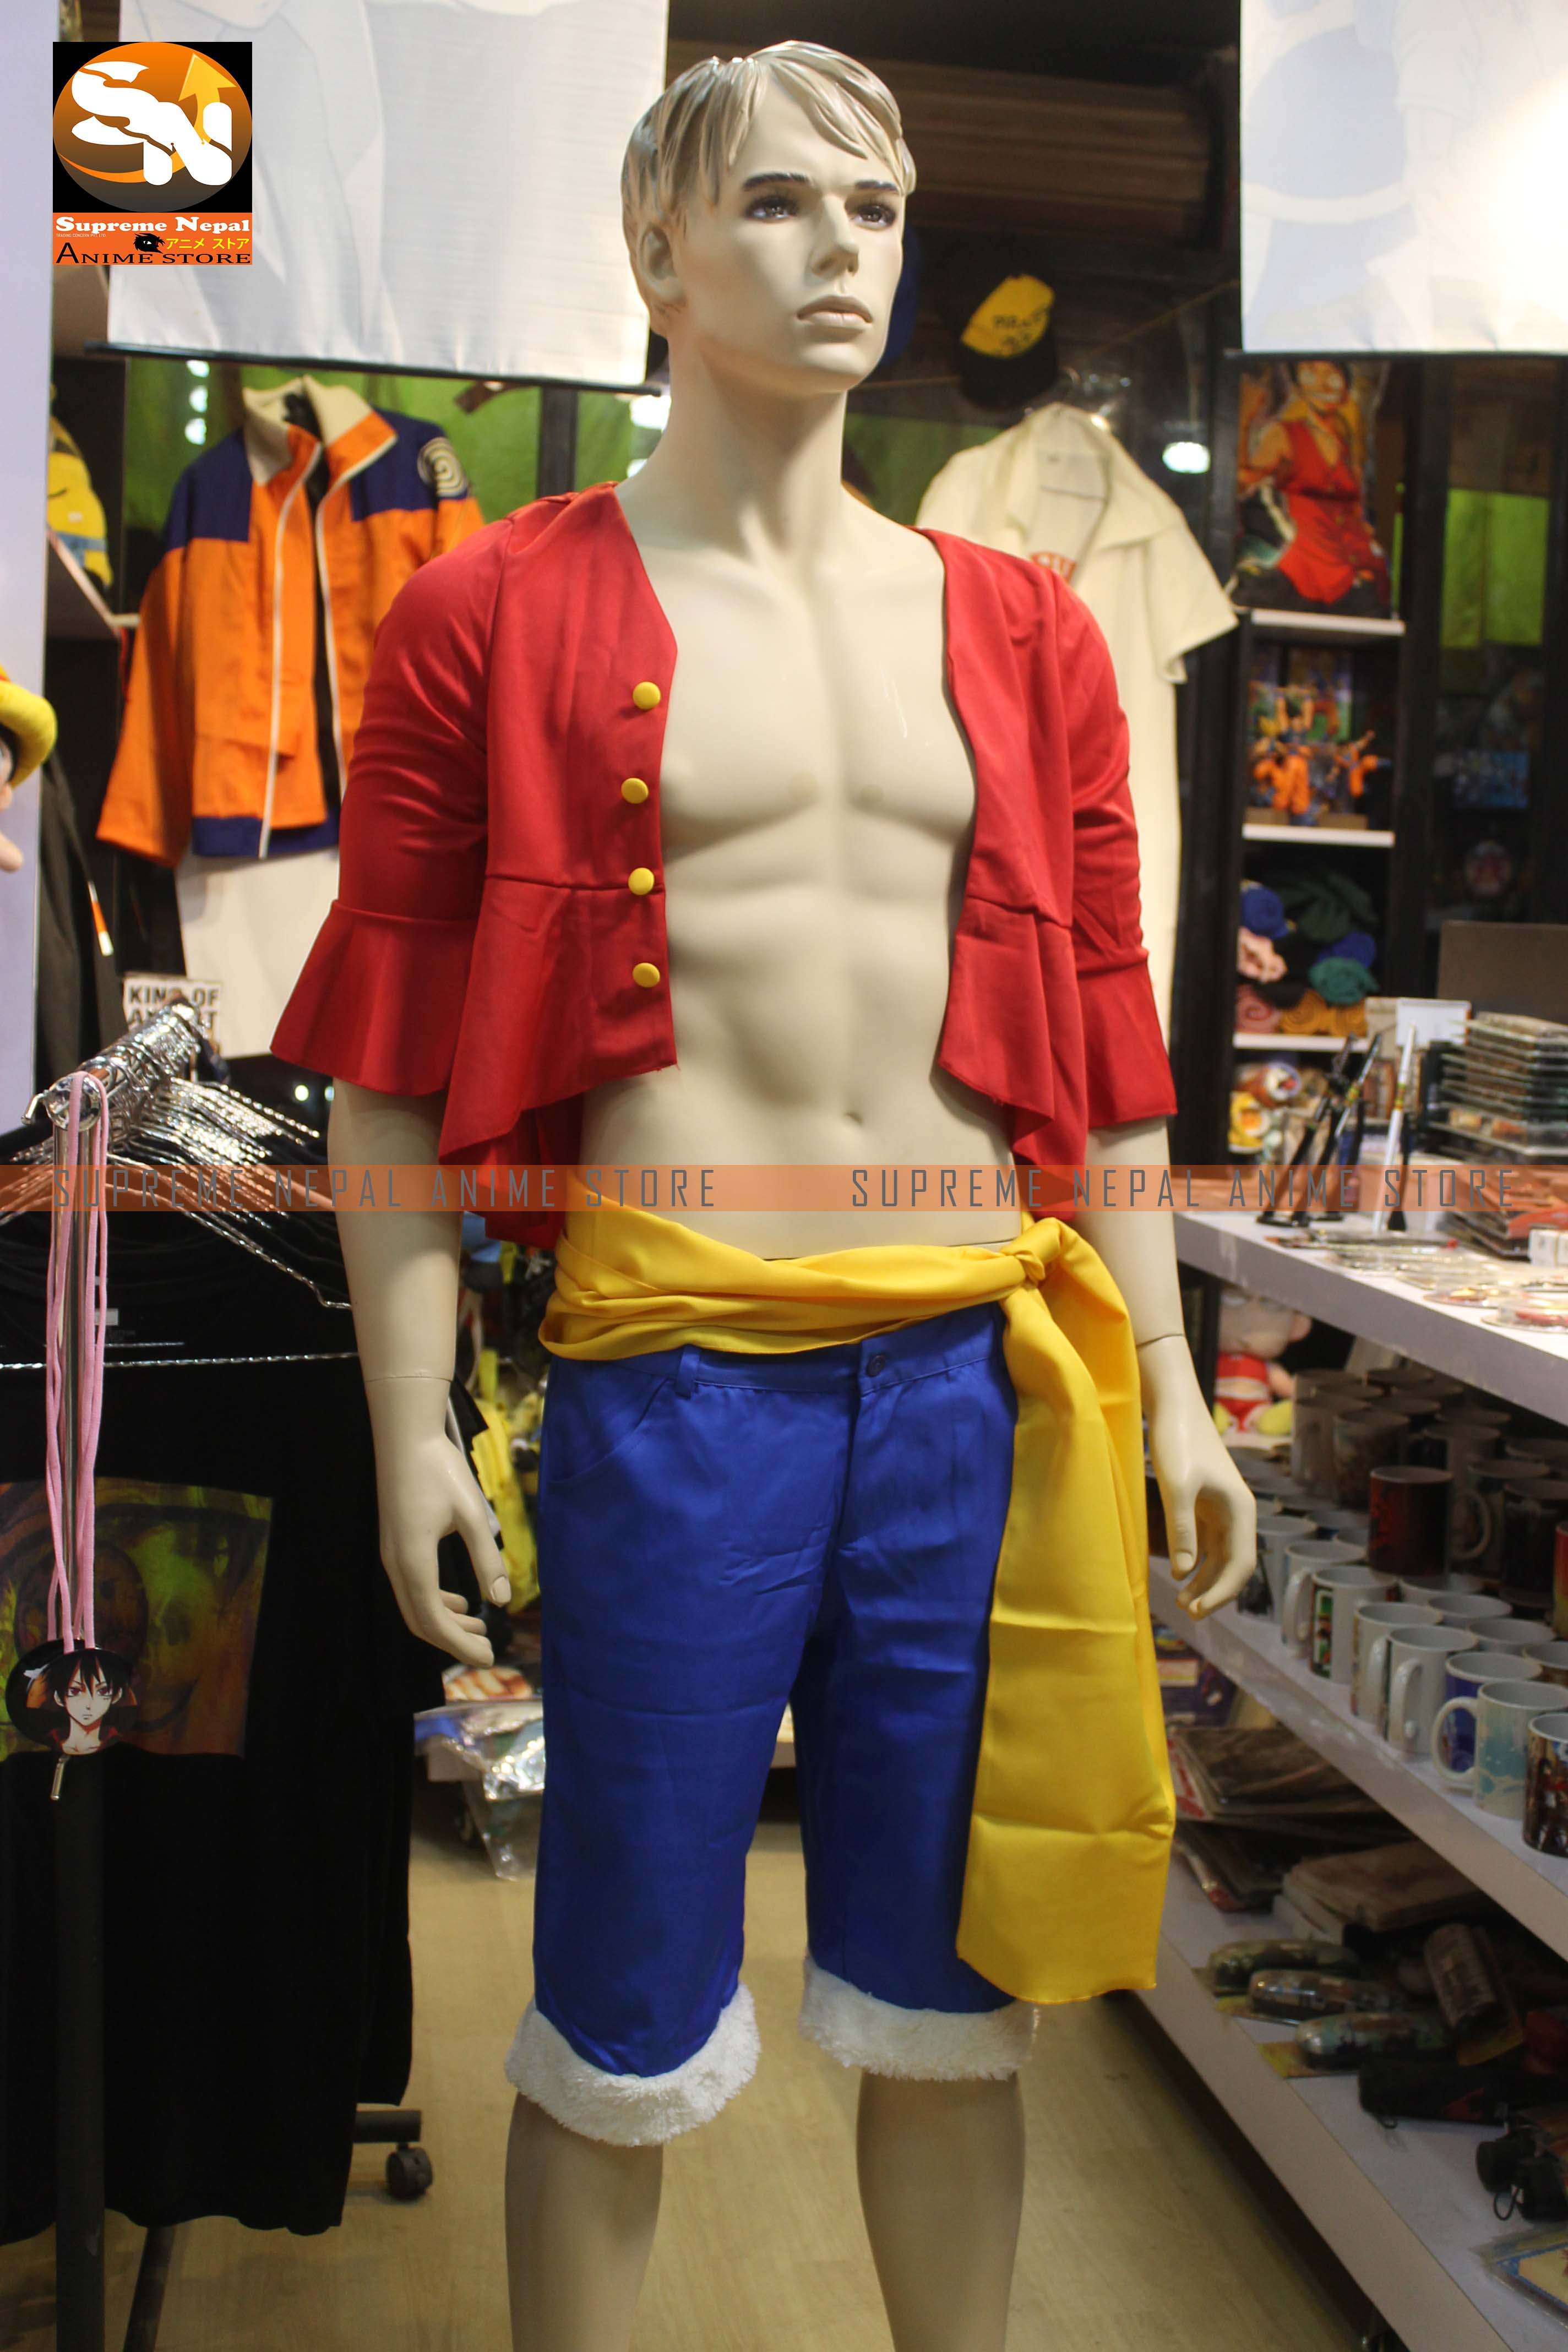 One Piece Luffy Cosplay Dress (Full) - Anime Store